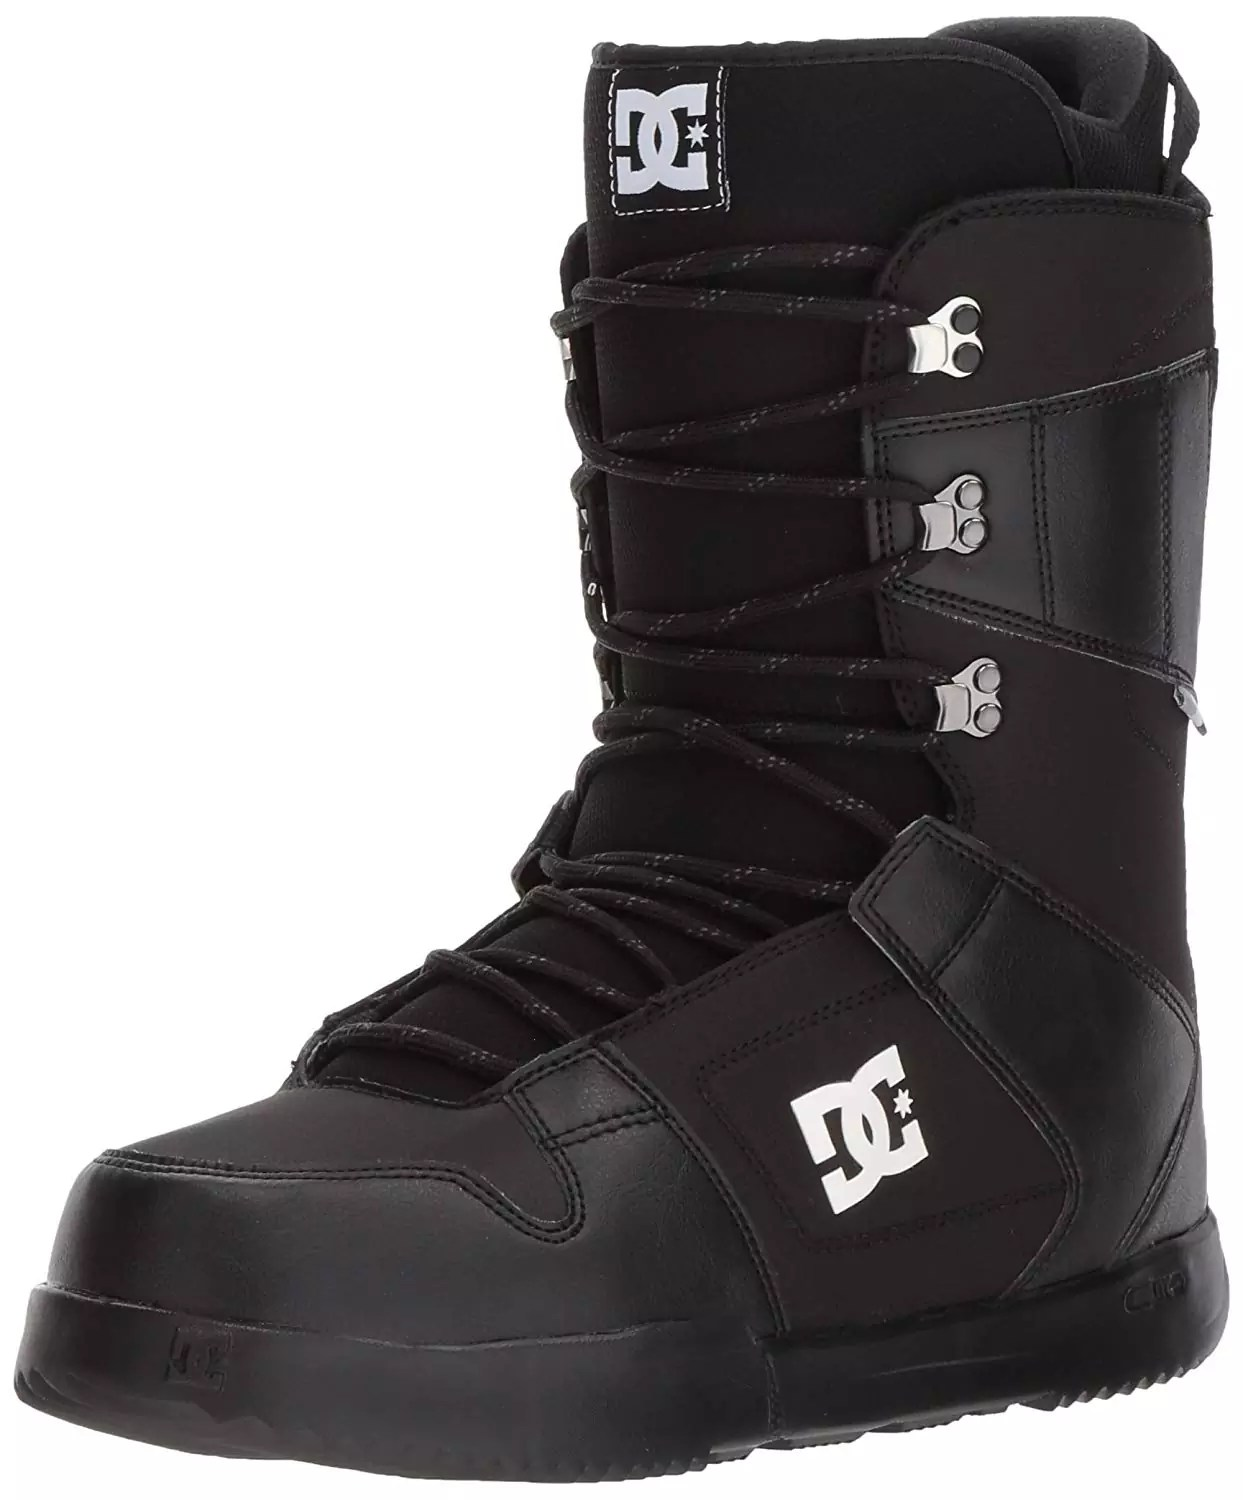 DC Mens Phase Lace Up Snowboard Boots